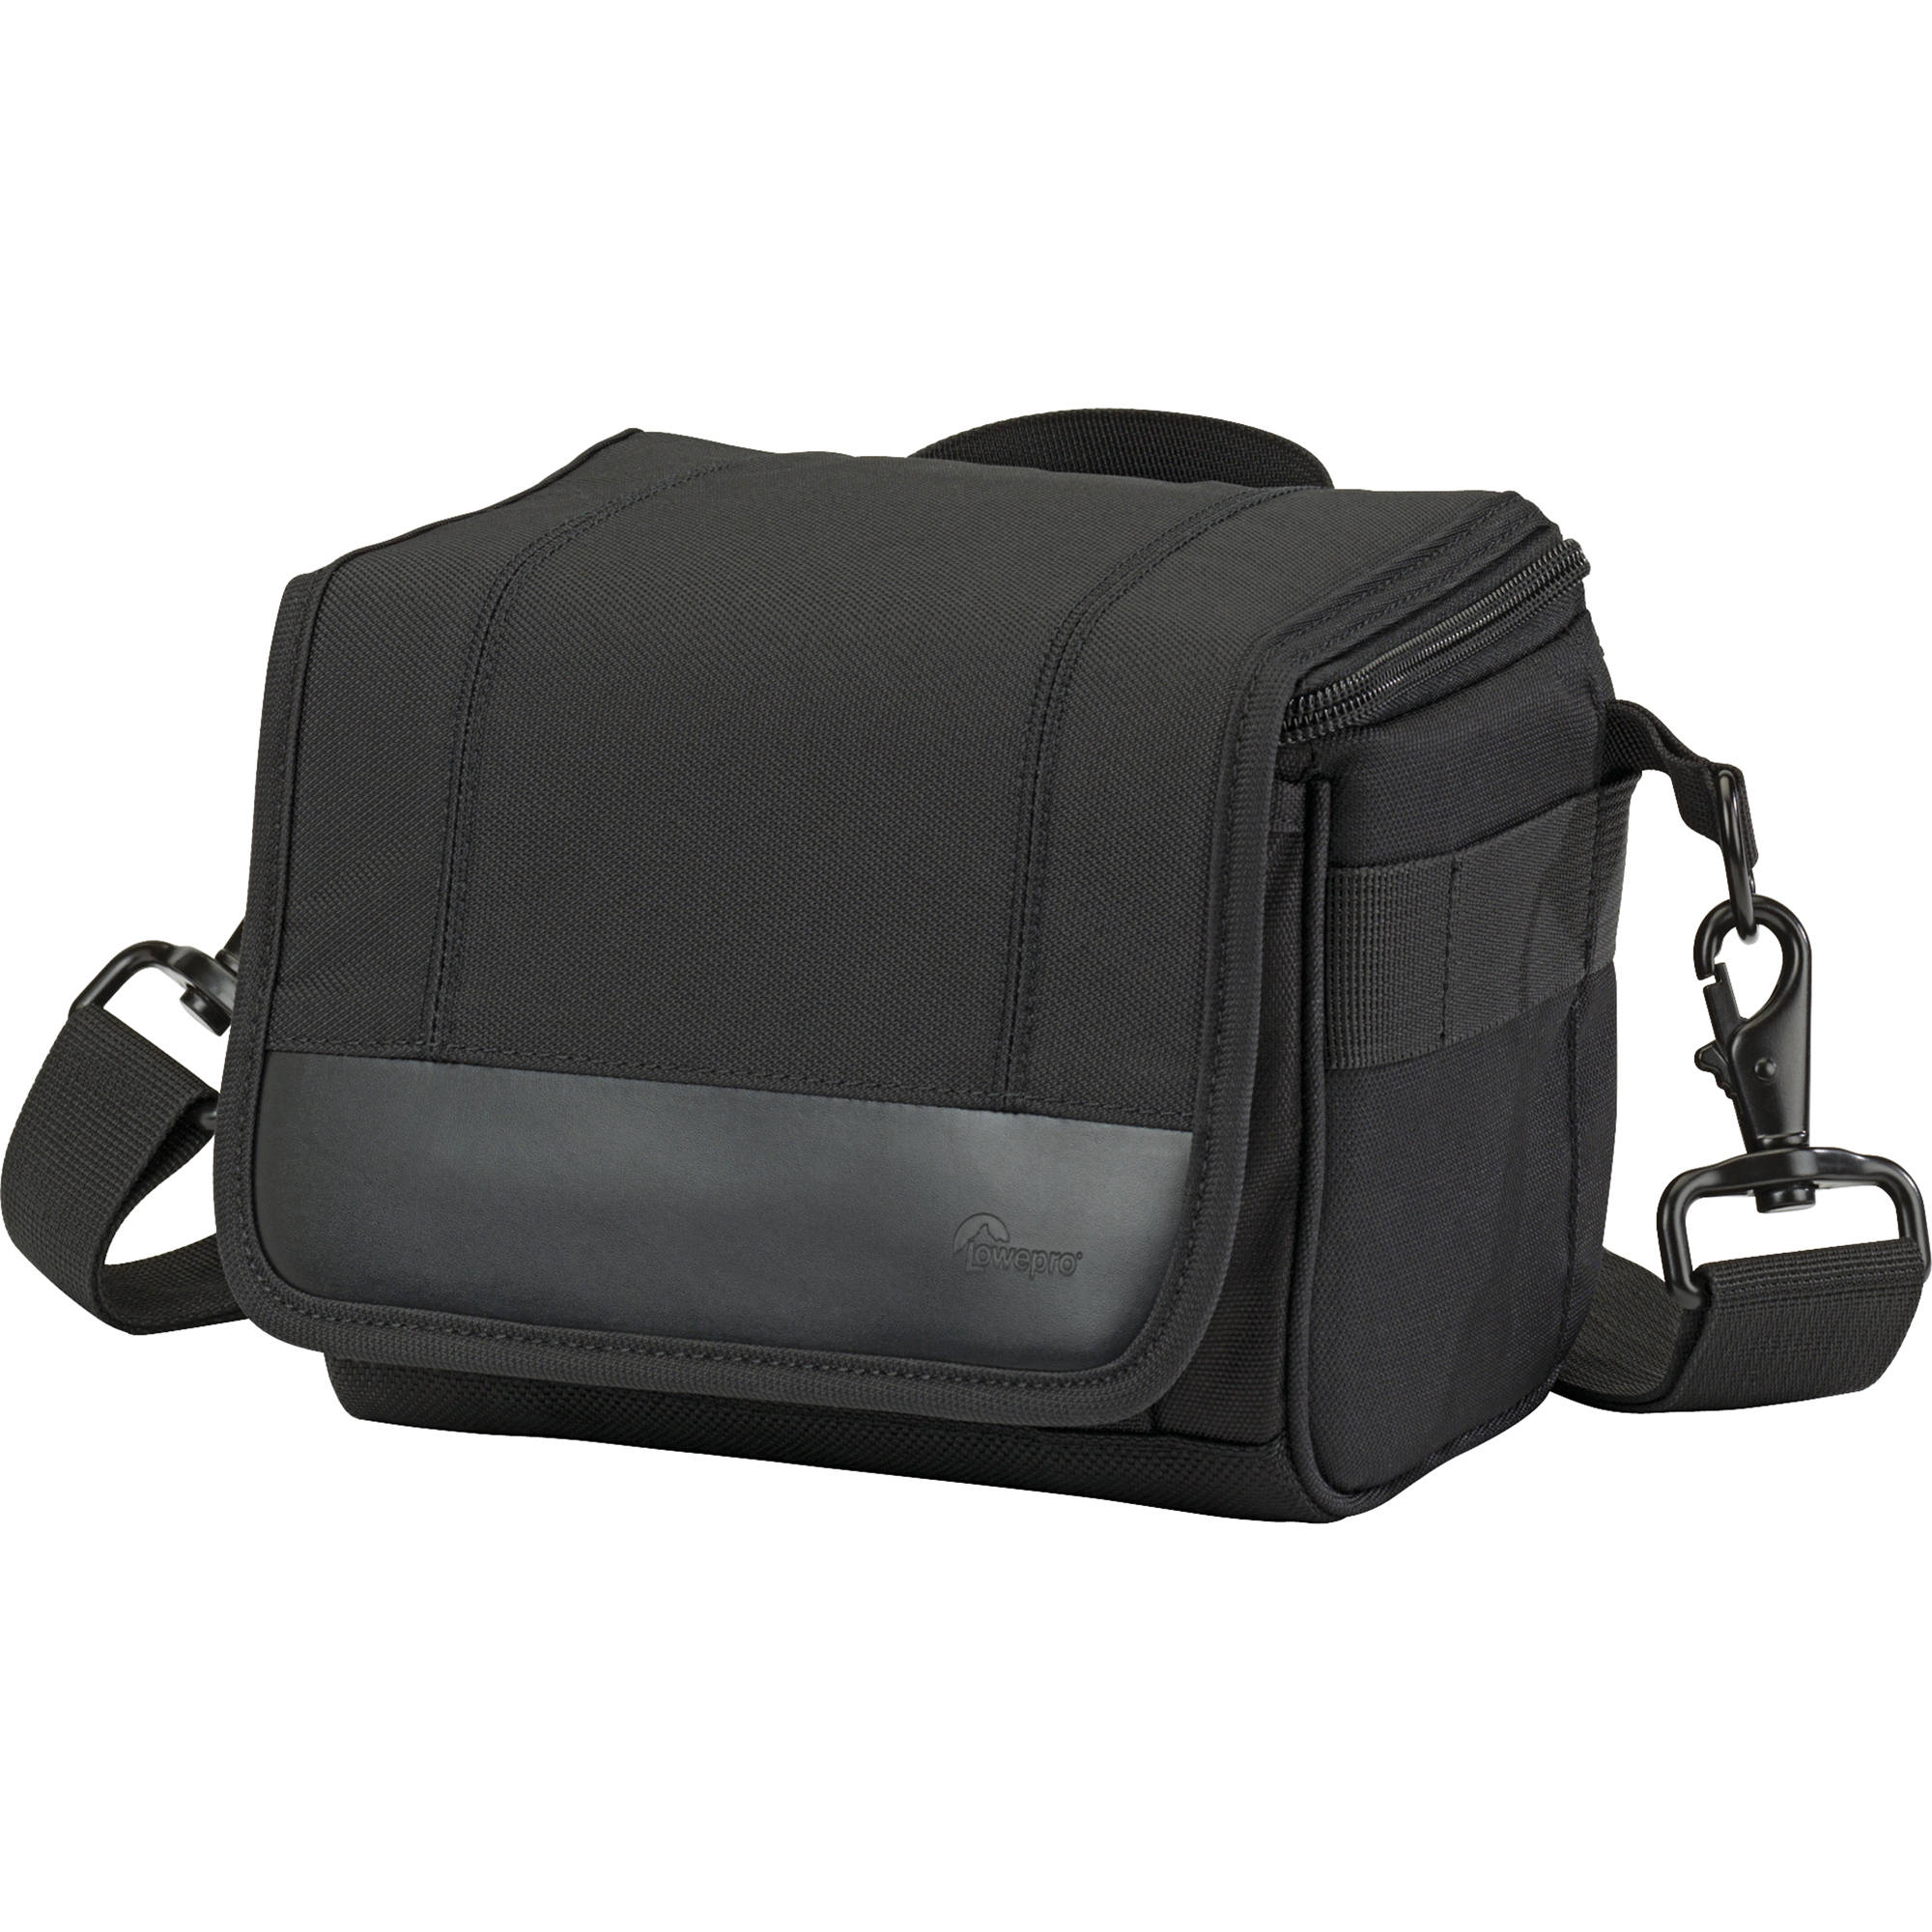 Lowepro Ilc Classic 50 Shoulder Bag 19